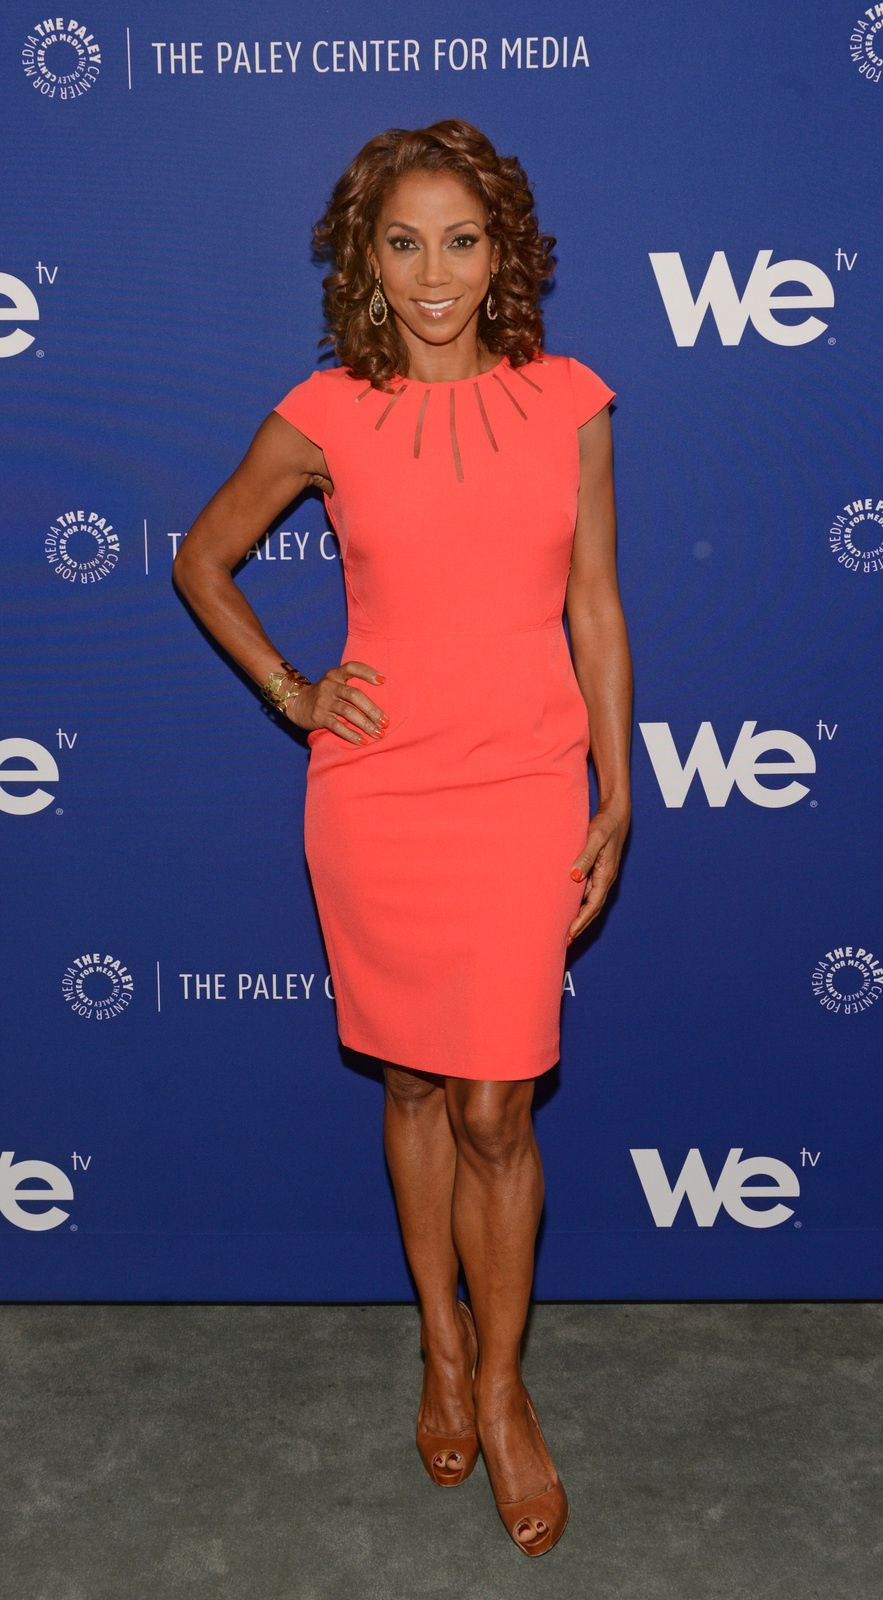 © Kevin Parry for The Paley Center for Media